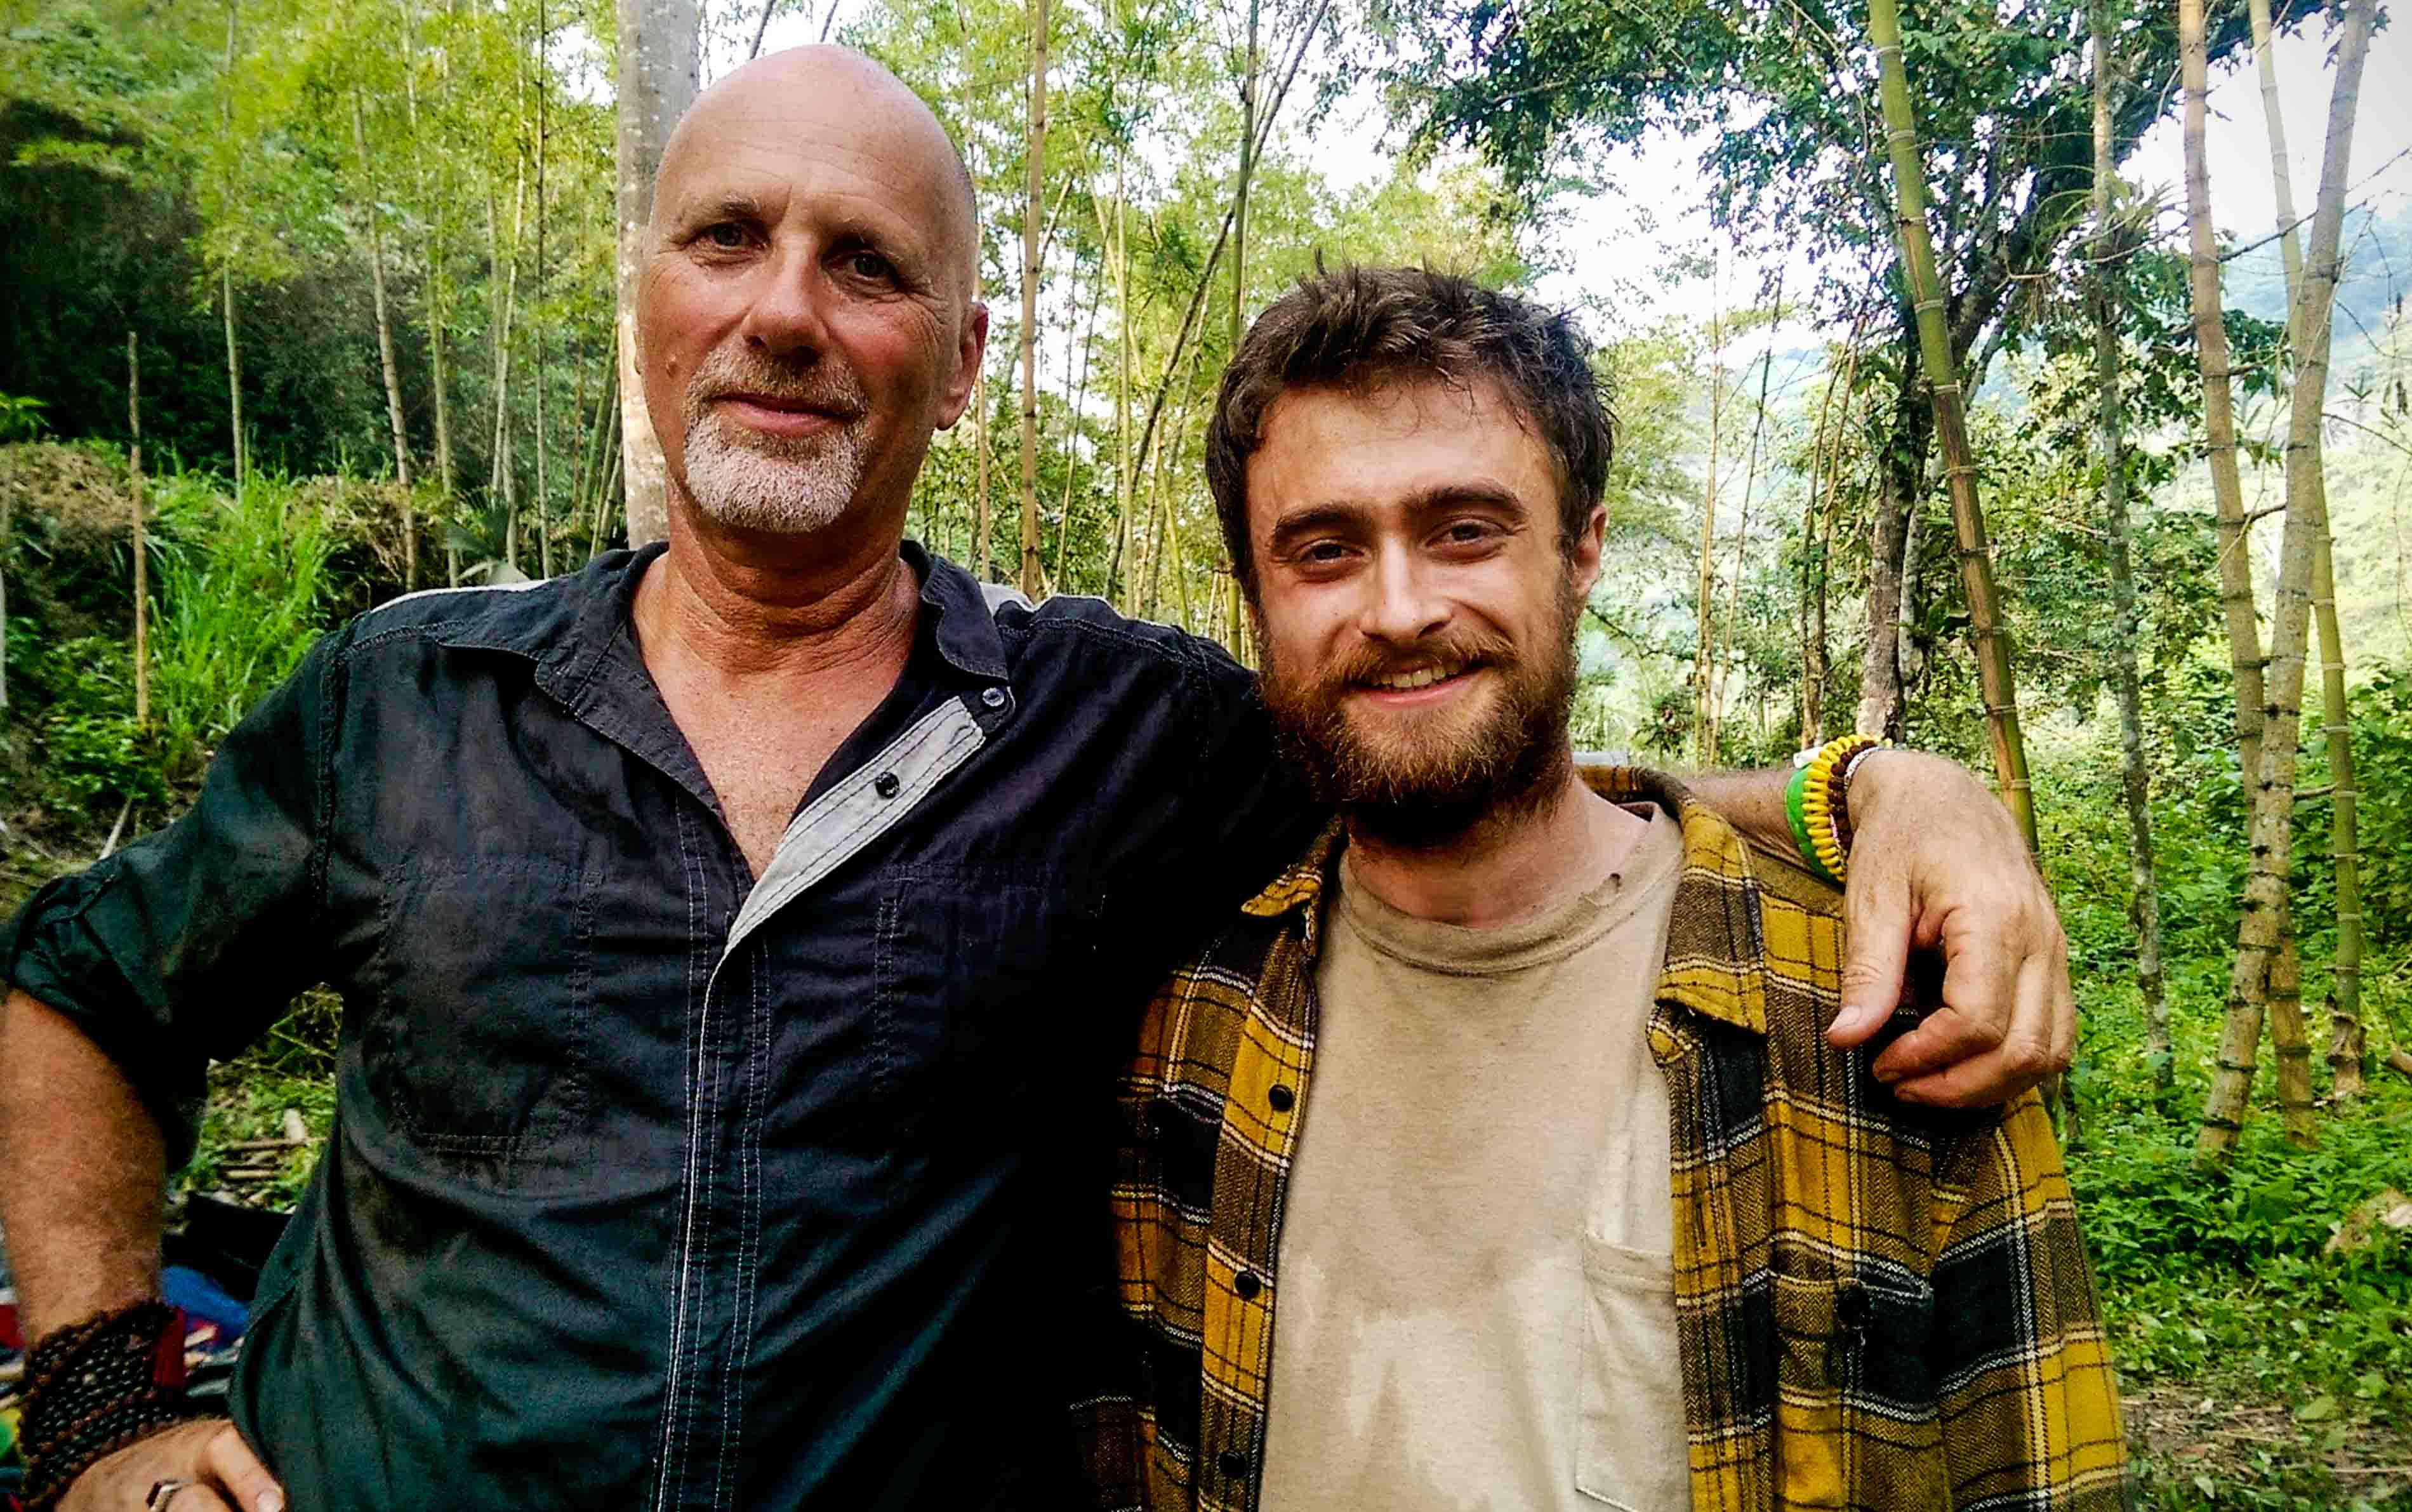 bolivia-jungle-movie-with-daniel-radcliffe-and-crew-photo-courtesy-of-chalalan-3.jpg